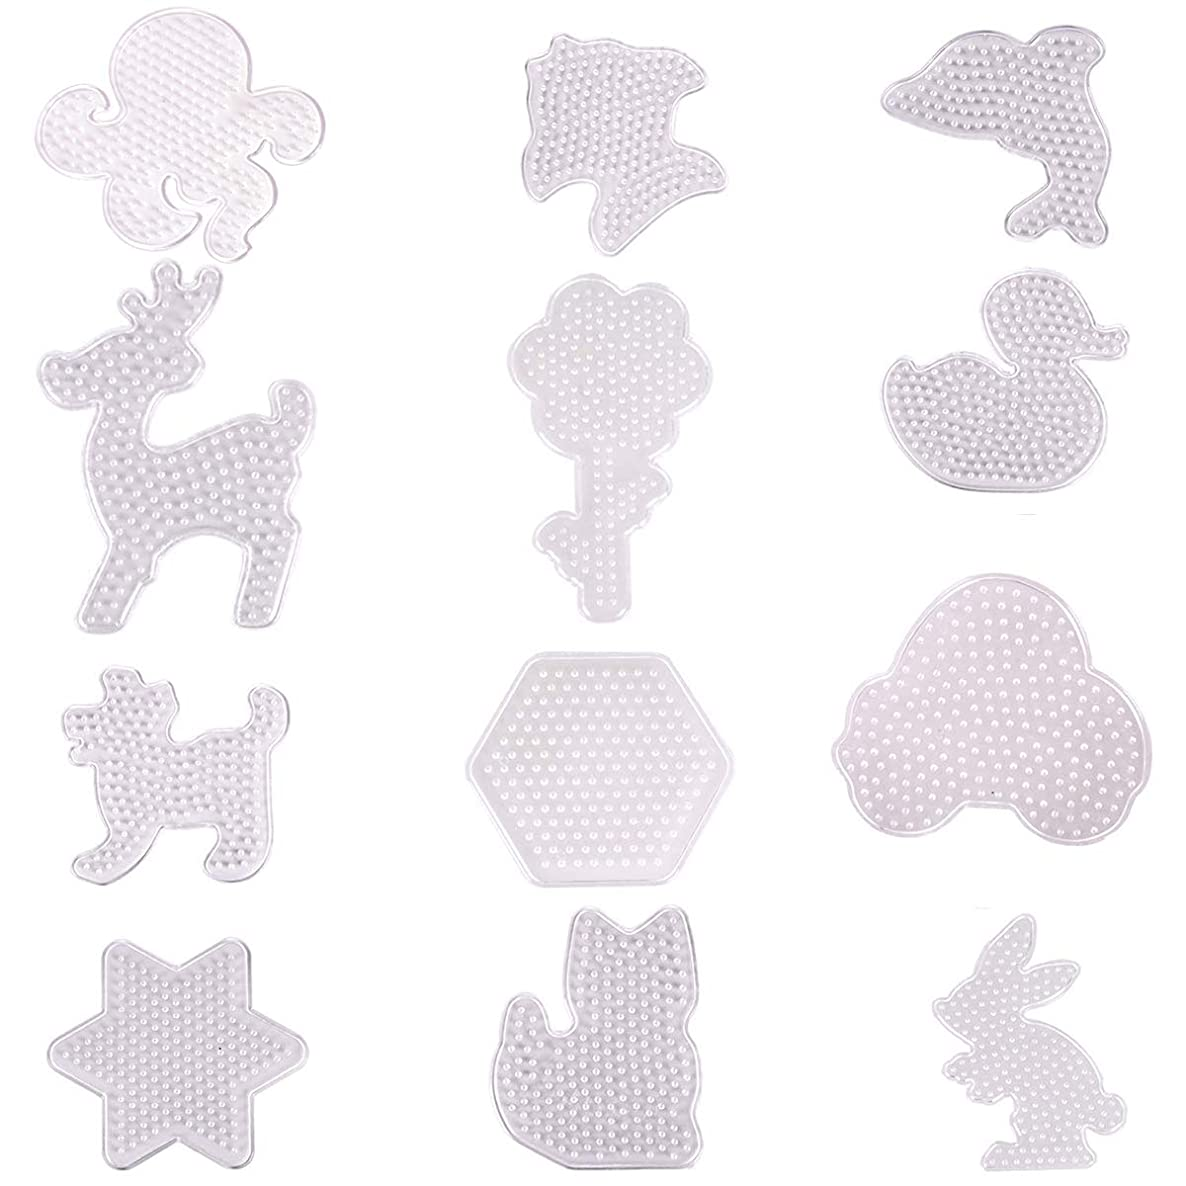 Hapy Shop Fuse Beads Pegboards 12 Pack 5 mm Clear Plastic Cute Animal Shape Template Beads Boards for Kids Craft Beads